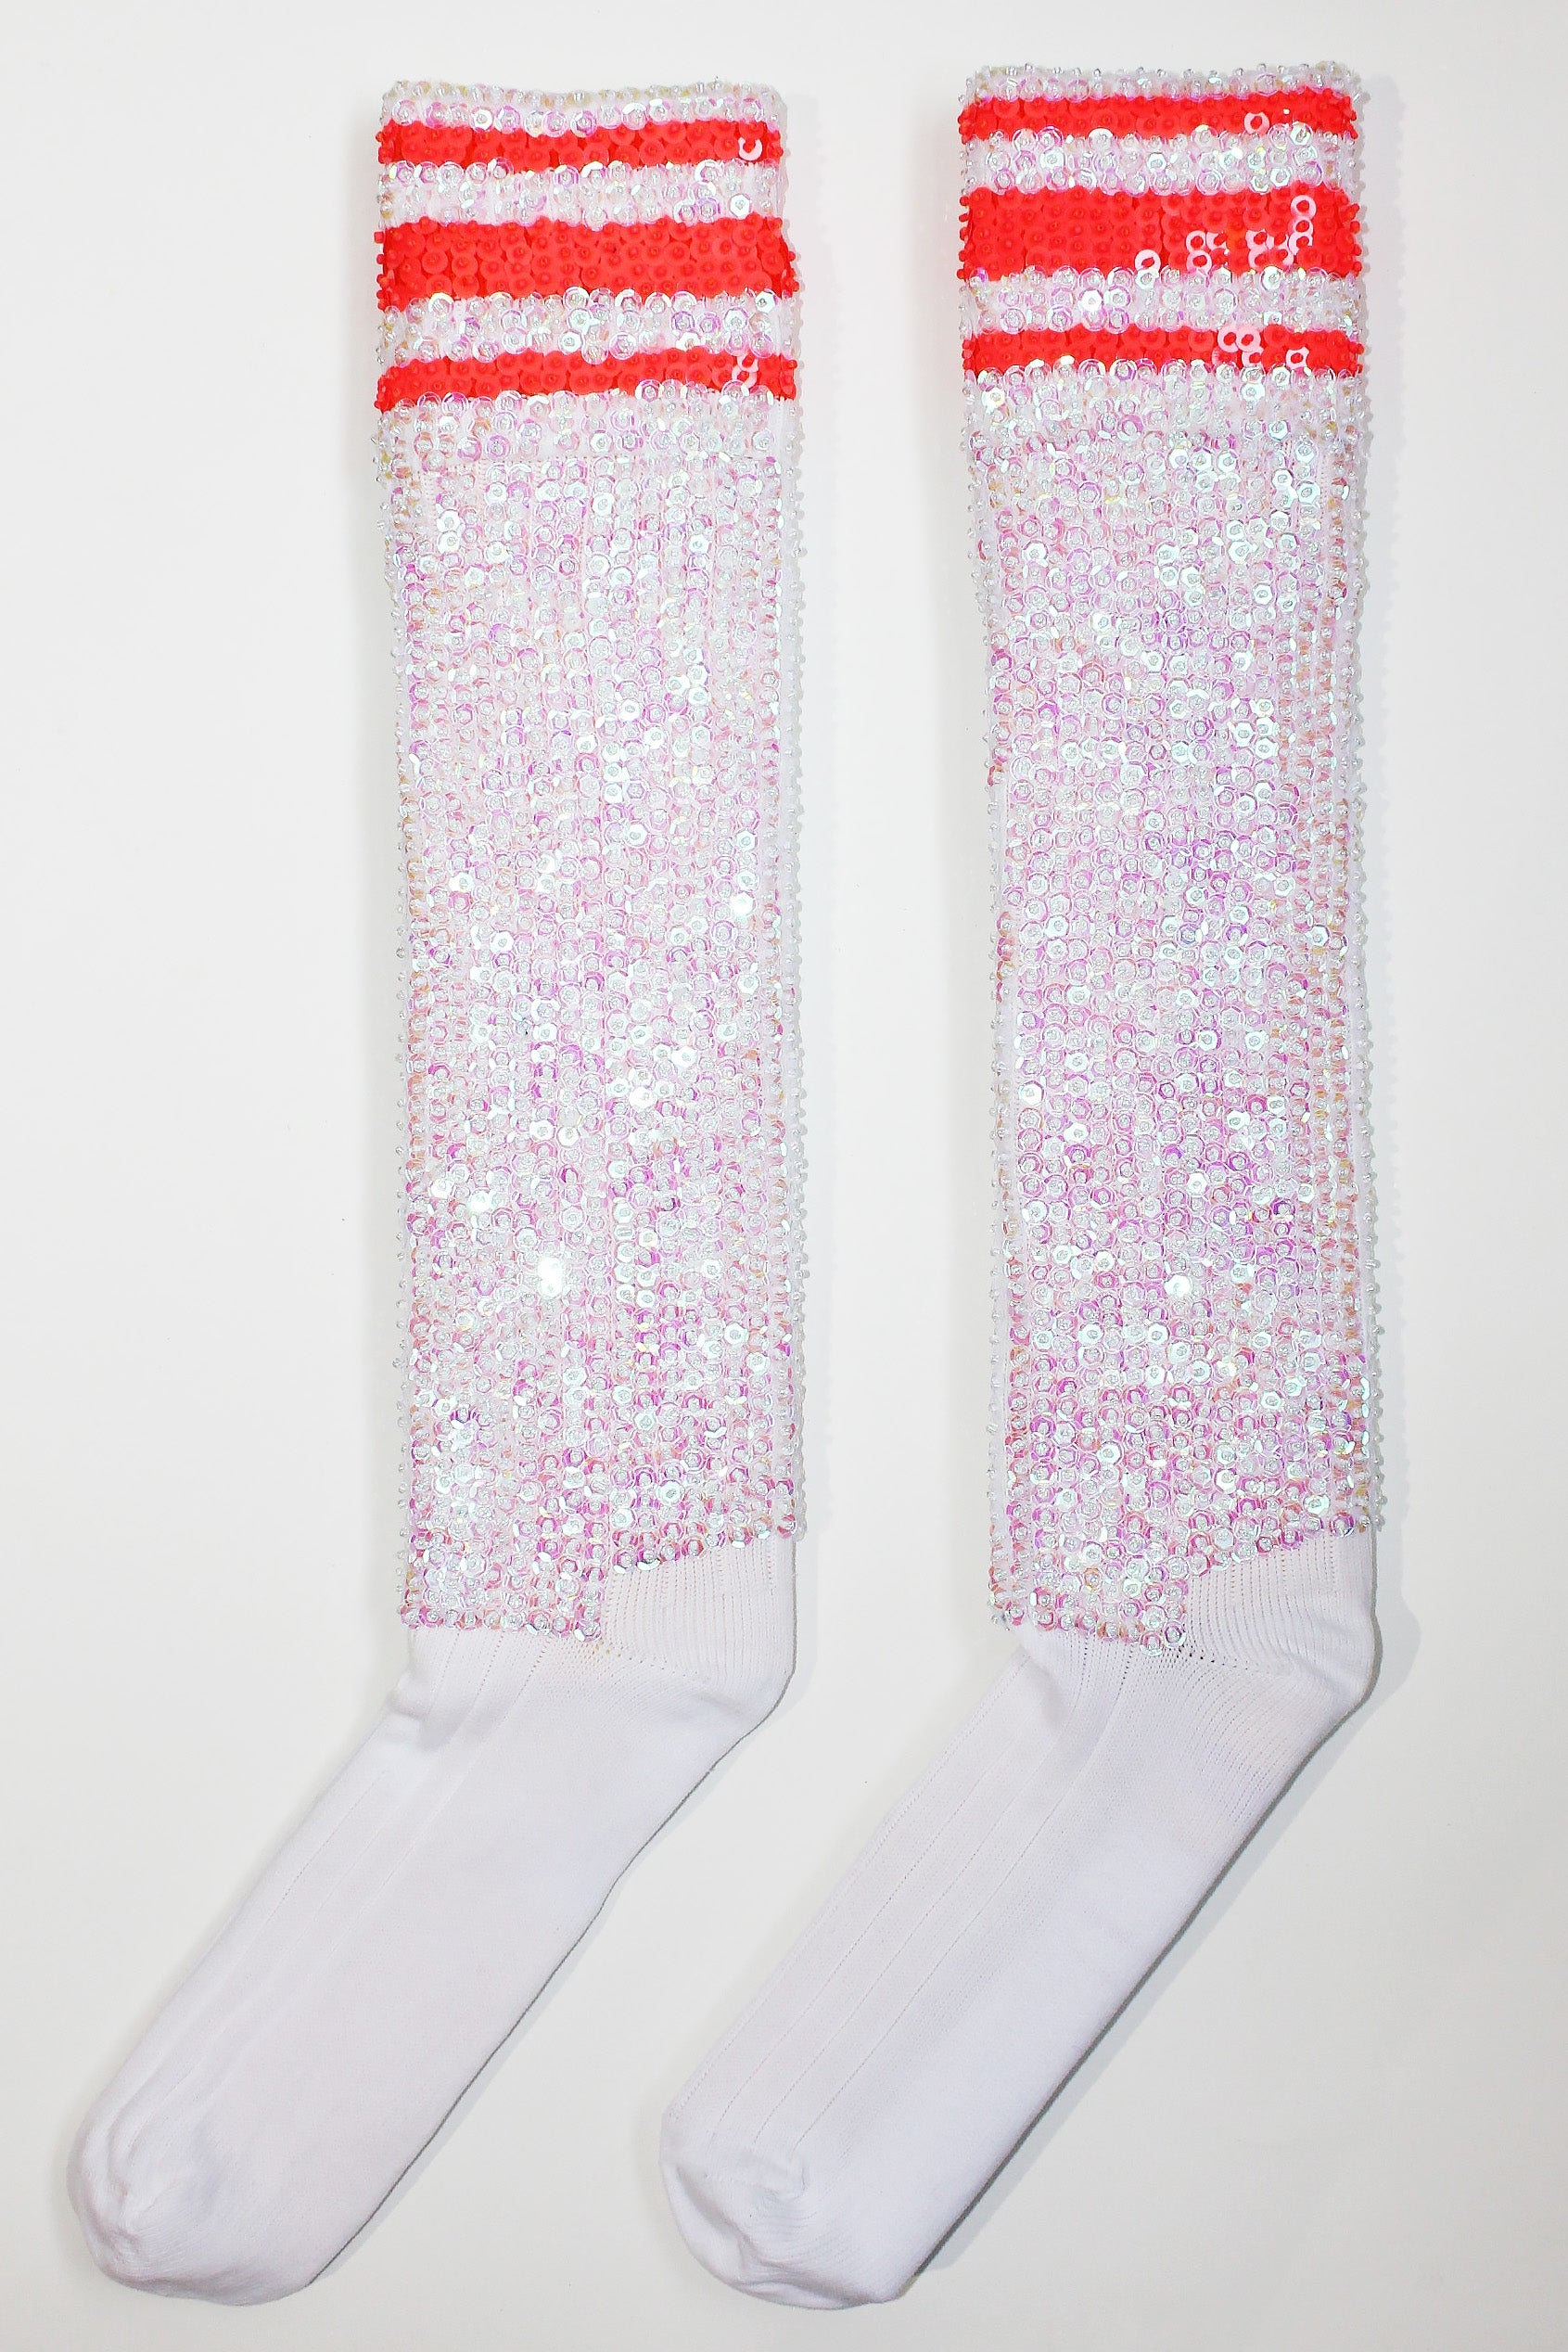 'White & Neon' Socks